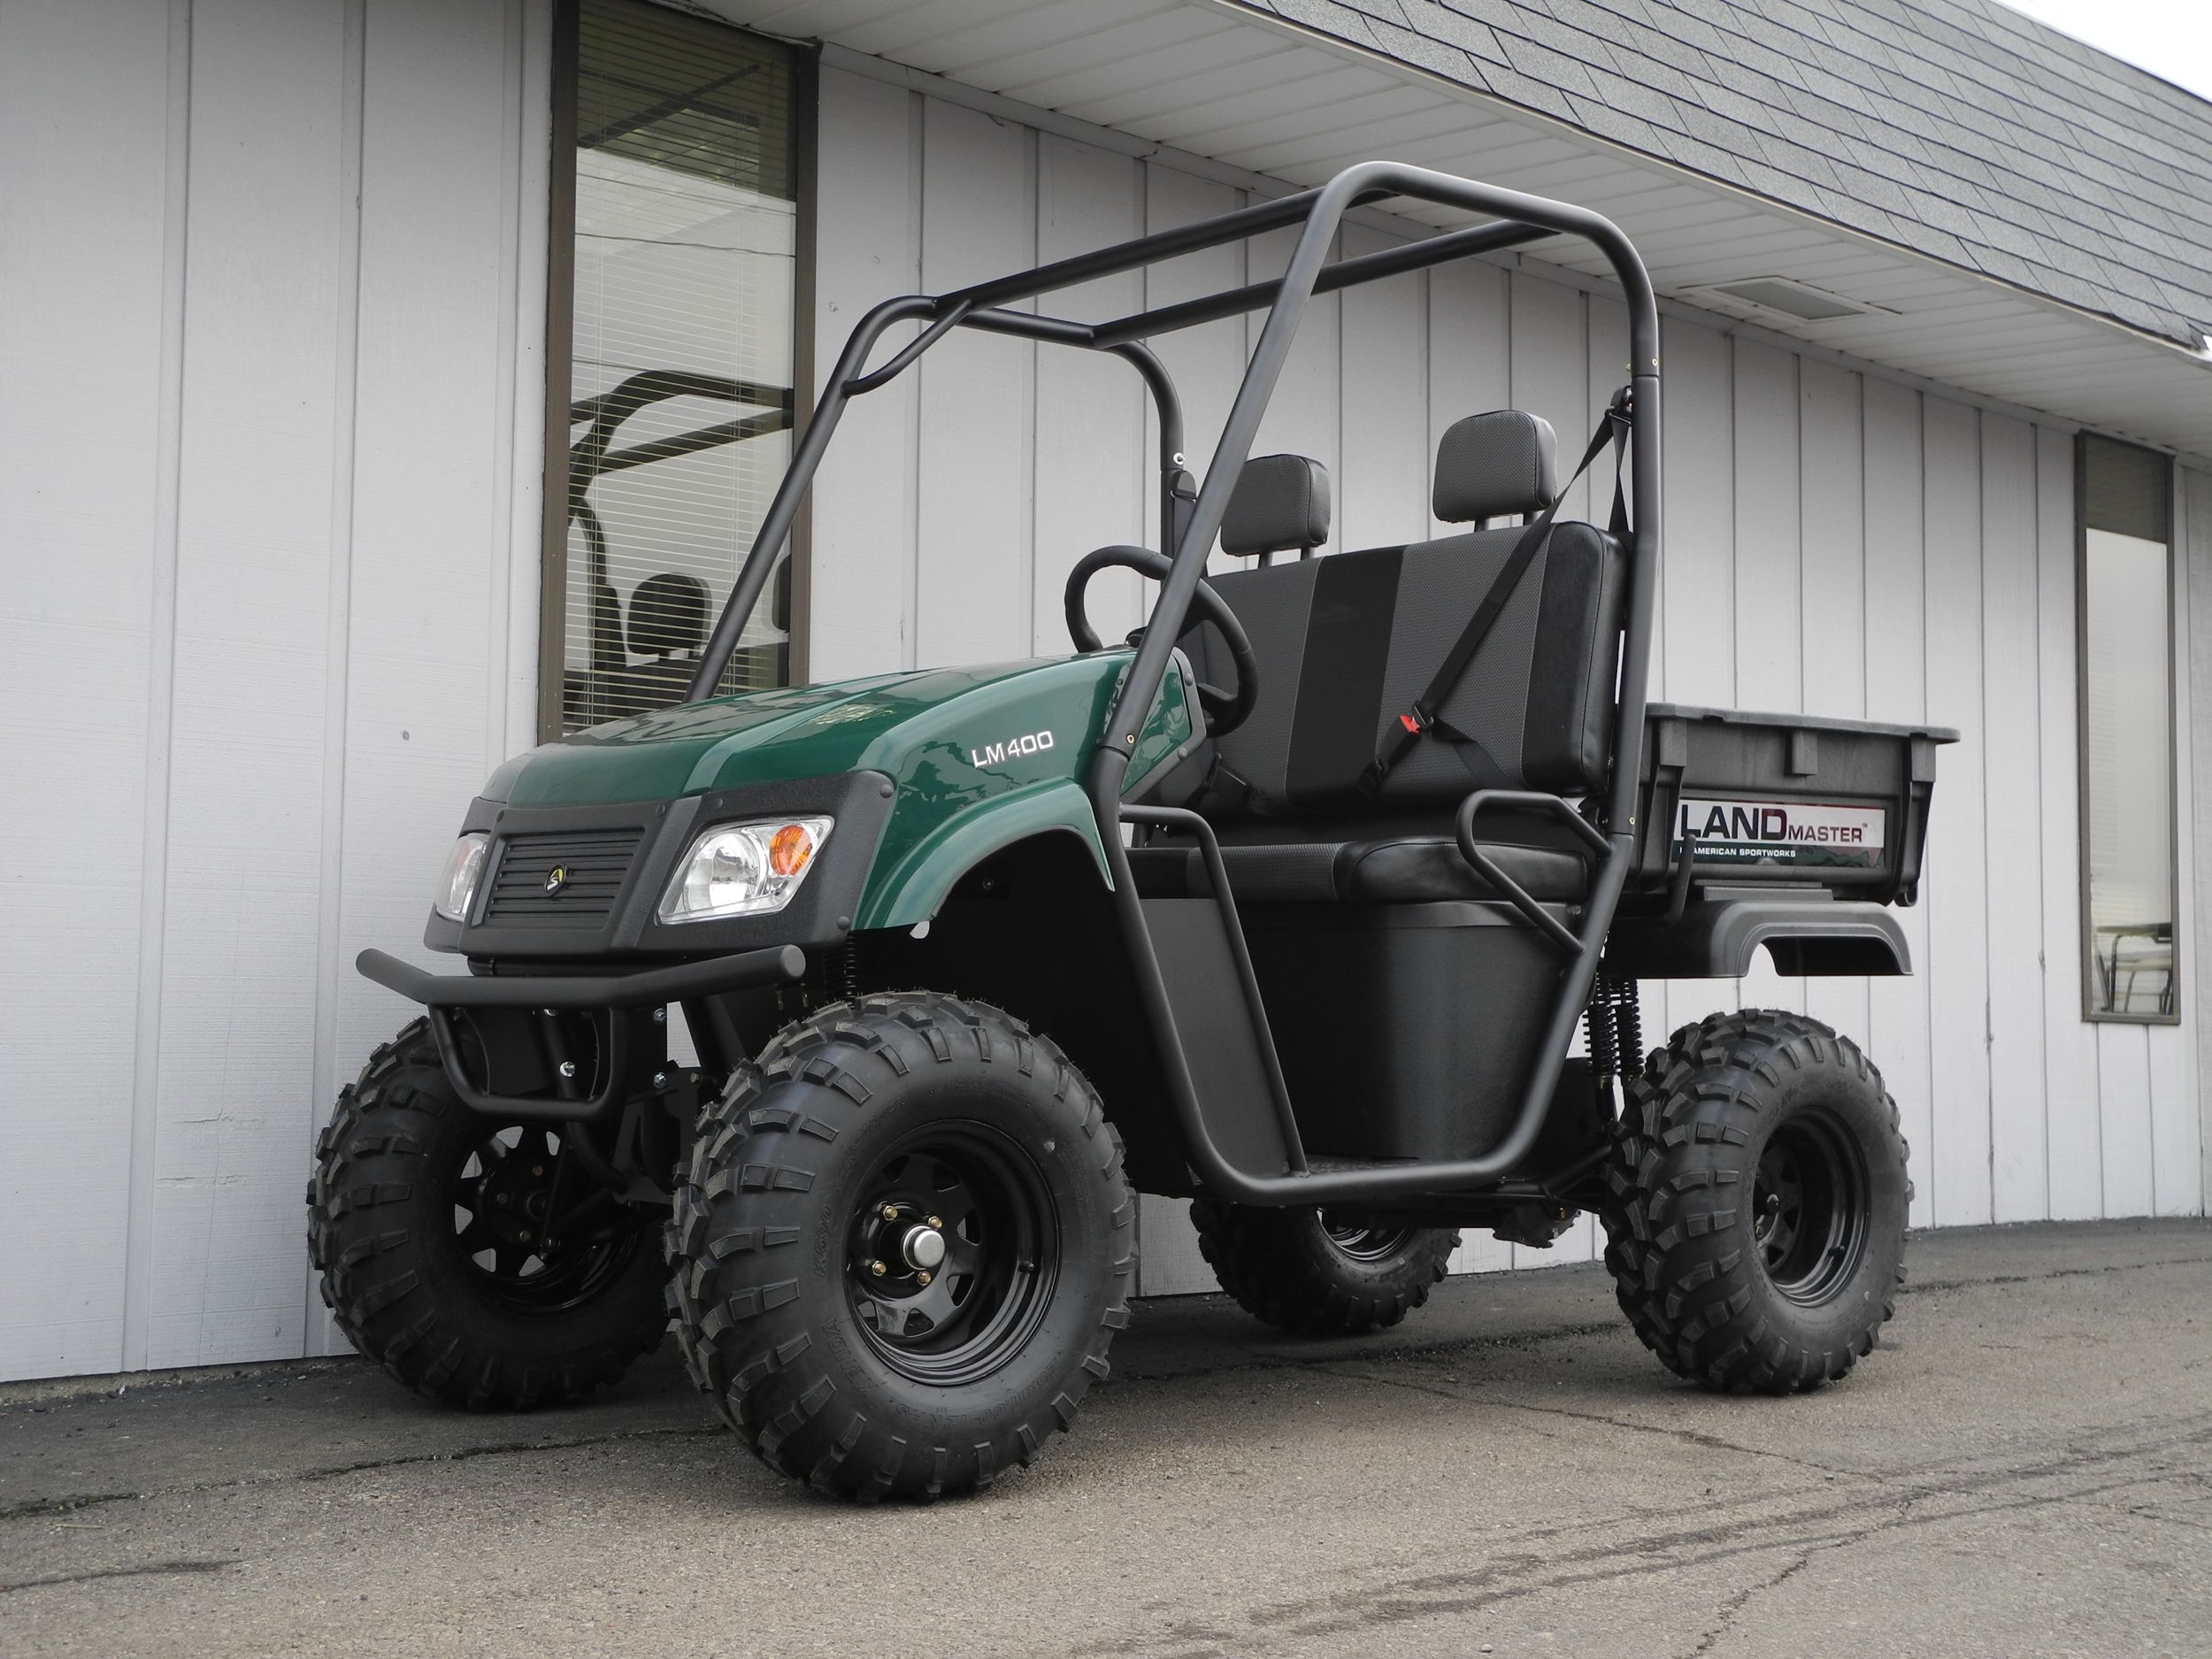 This American-made Landmaster LM400 side-by-side UTV from American